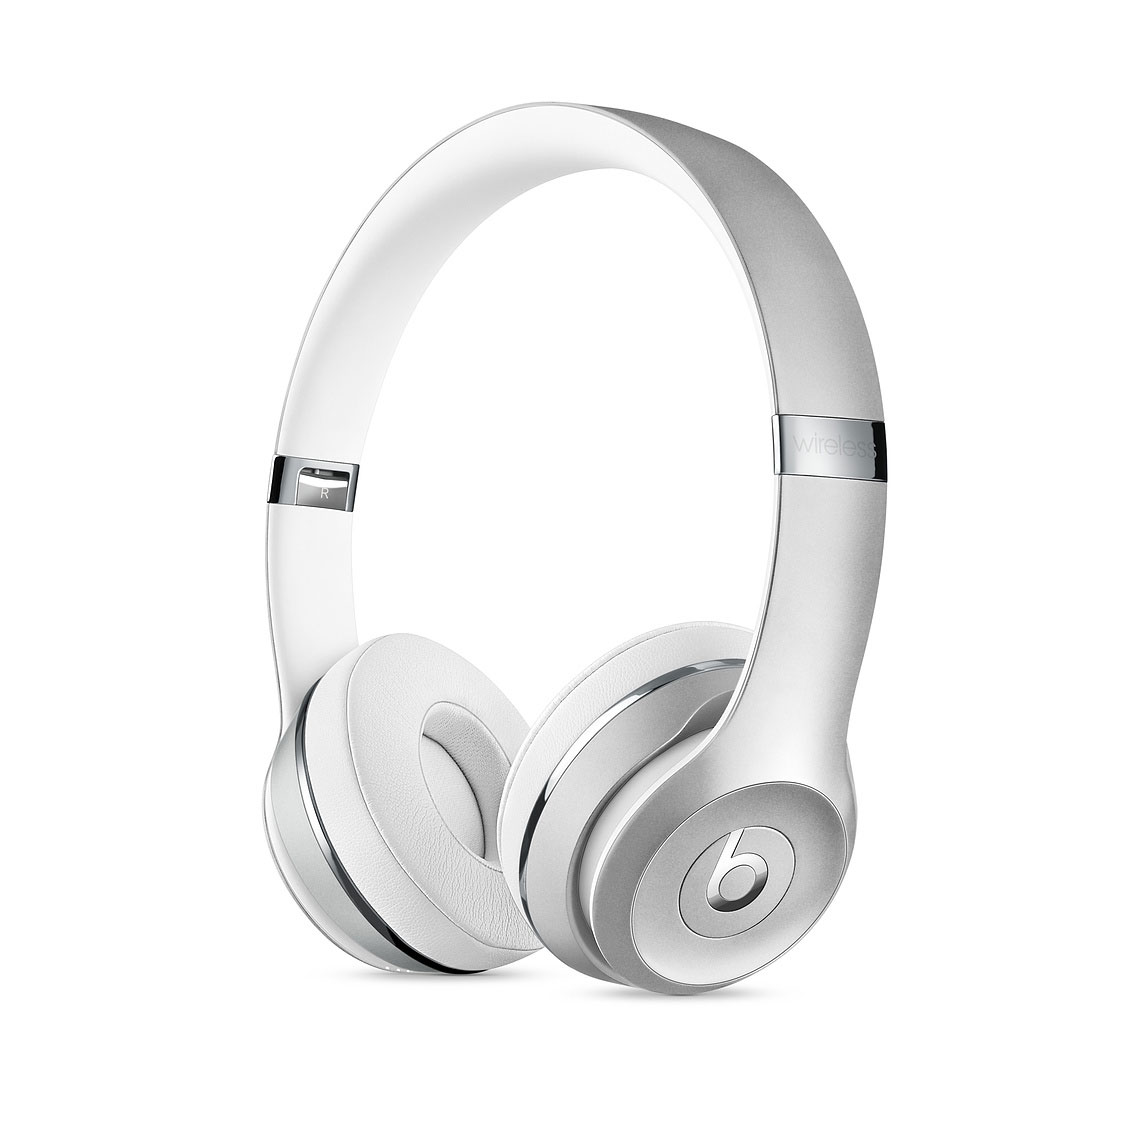 Beats-Solo3-Wireless-Headphones-Silver-Back-To-Uni-Offer